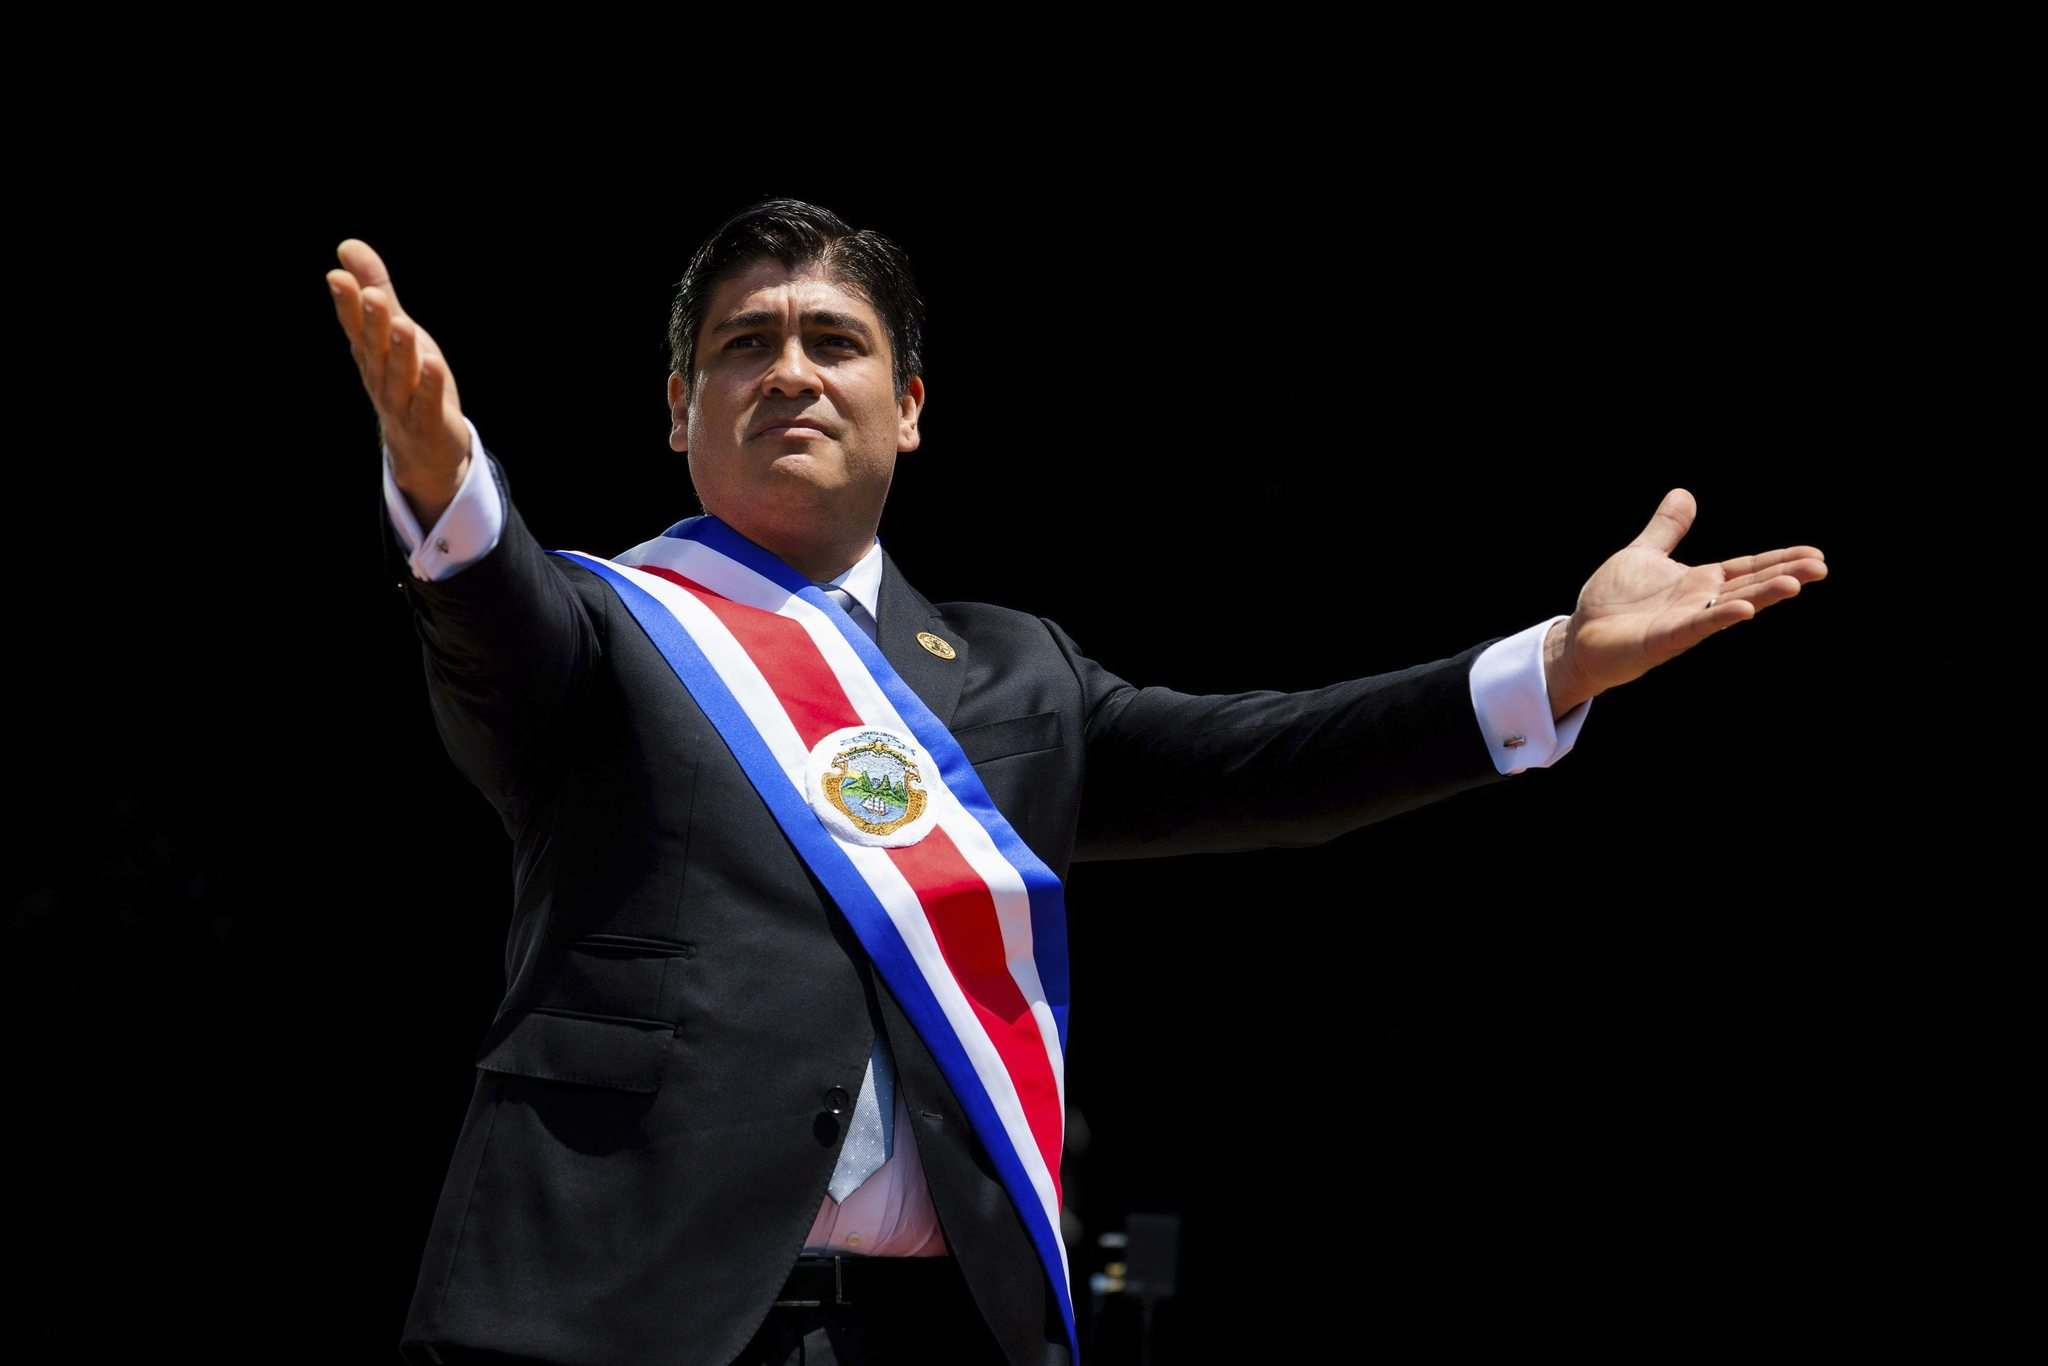 Costa Rica Foreign Ministry</p><p>Newly elected Costa Rican President Carlos Alvarado Quesada arrived at his inauguration in a hydrogen-powered bus.</p>